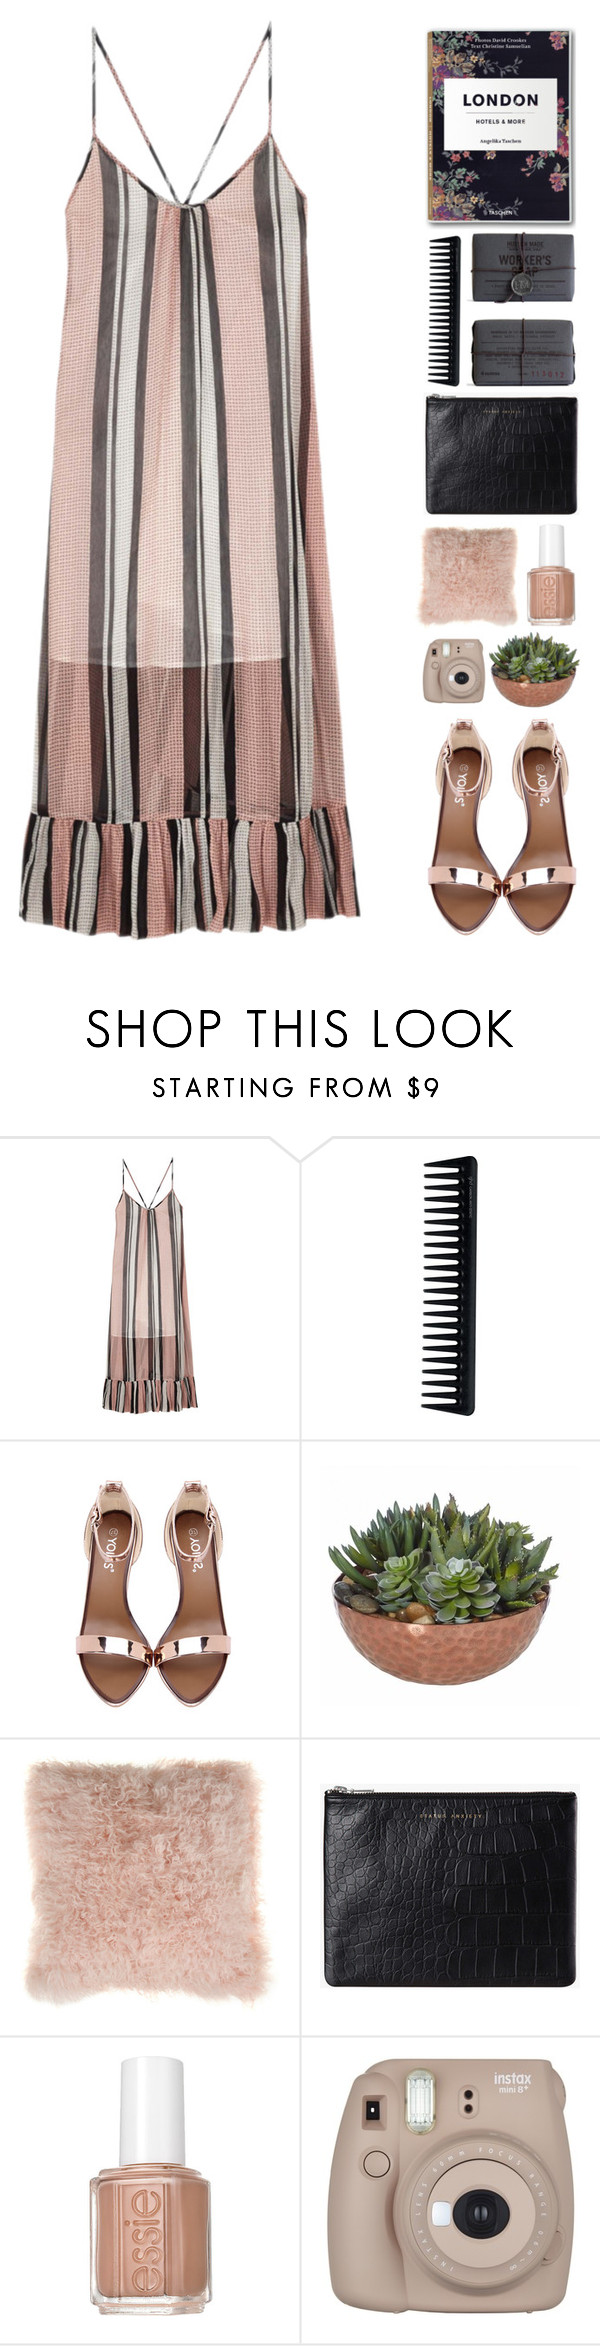 """""""It's Party Night"""" by makeupgoddess ❤ liked on Polyvore featuring Baum und Pferdgarten, Hudson Made, GHD, Bloomingville, Status Anxiety, Essie and Fujifilm"""